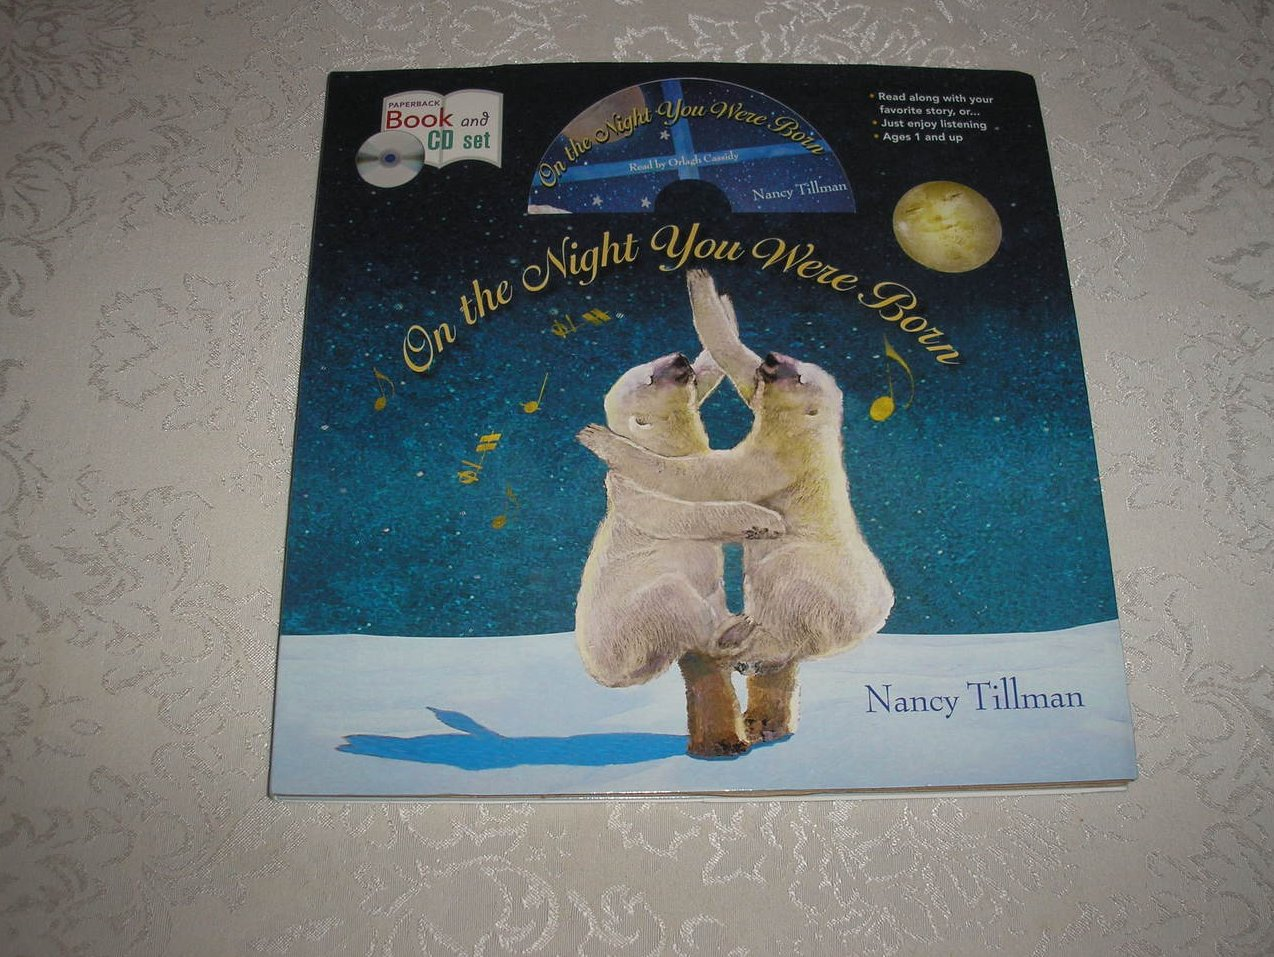 On the Night You Were Born brand new sc and Audio CD Nancy Tillman